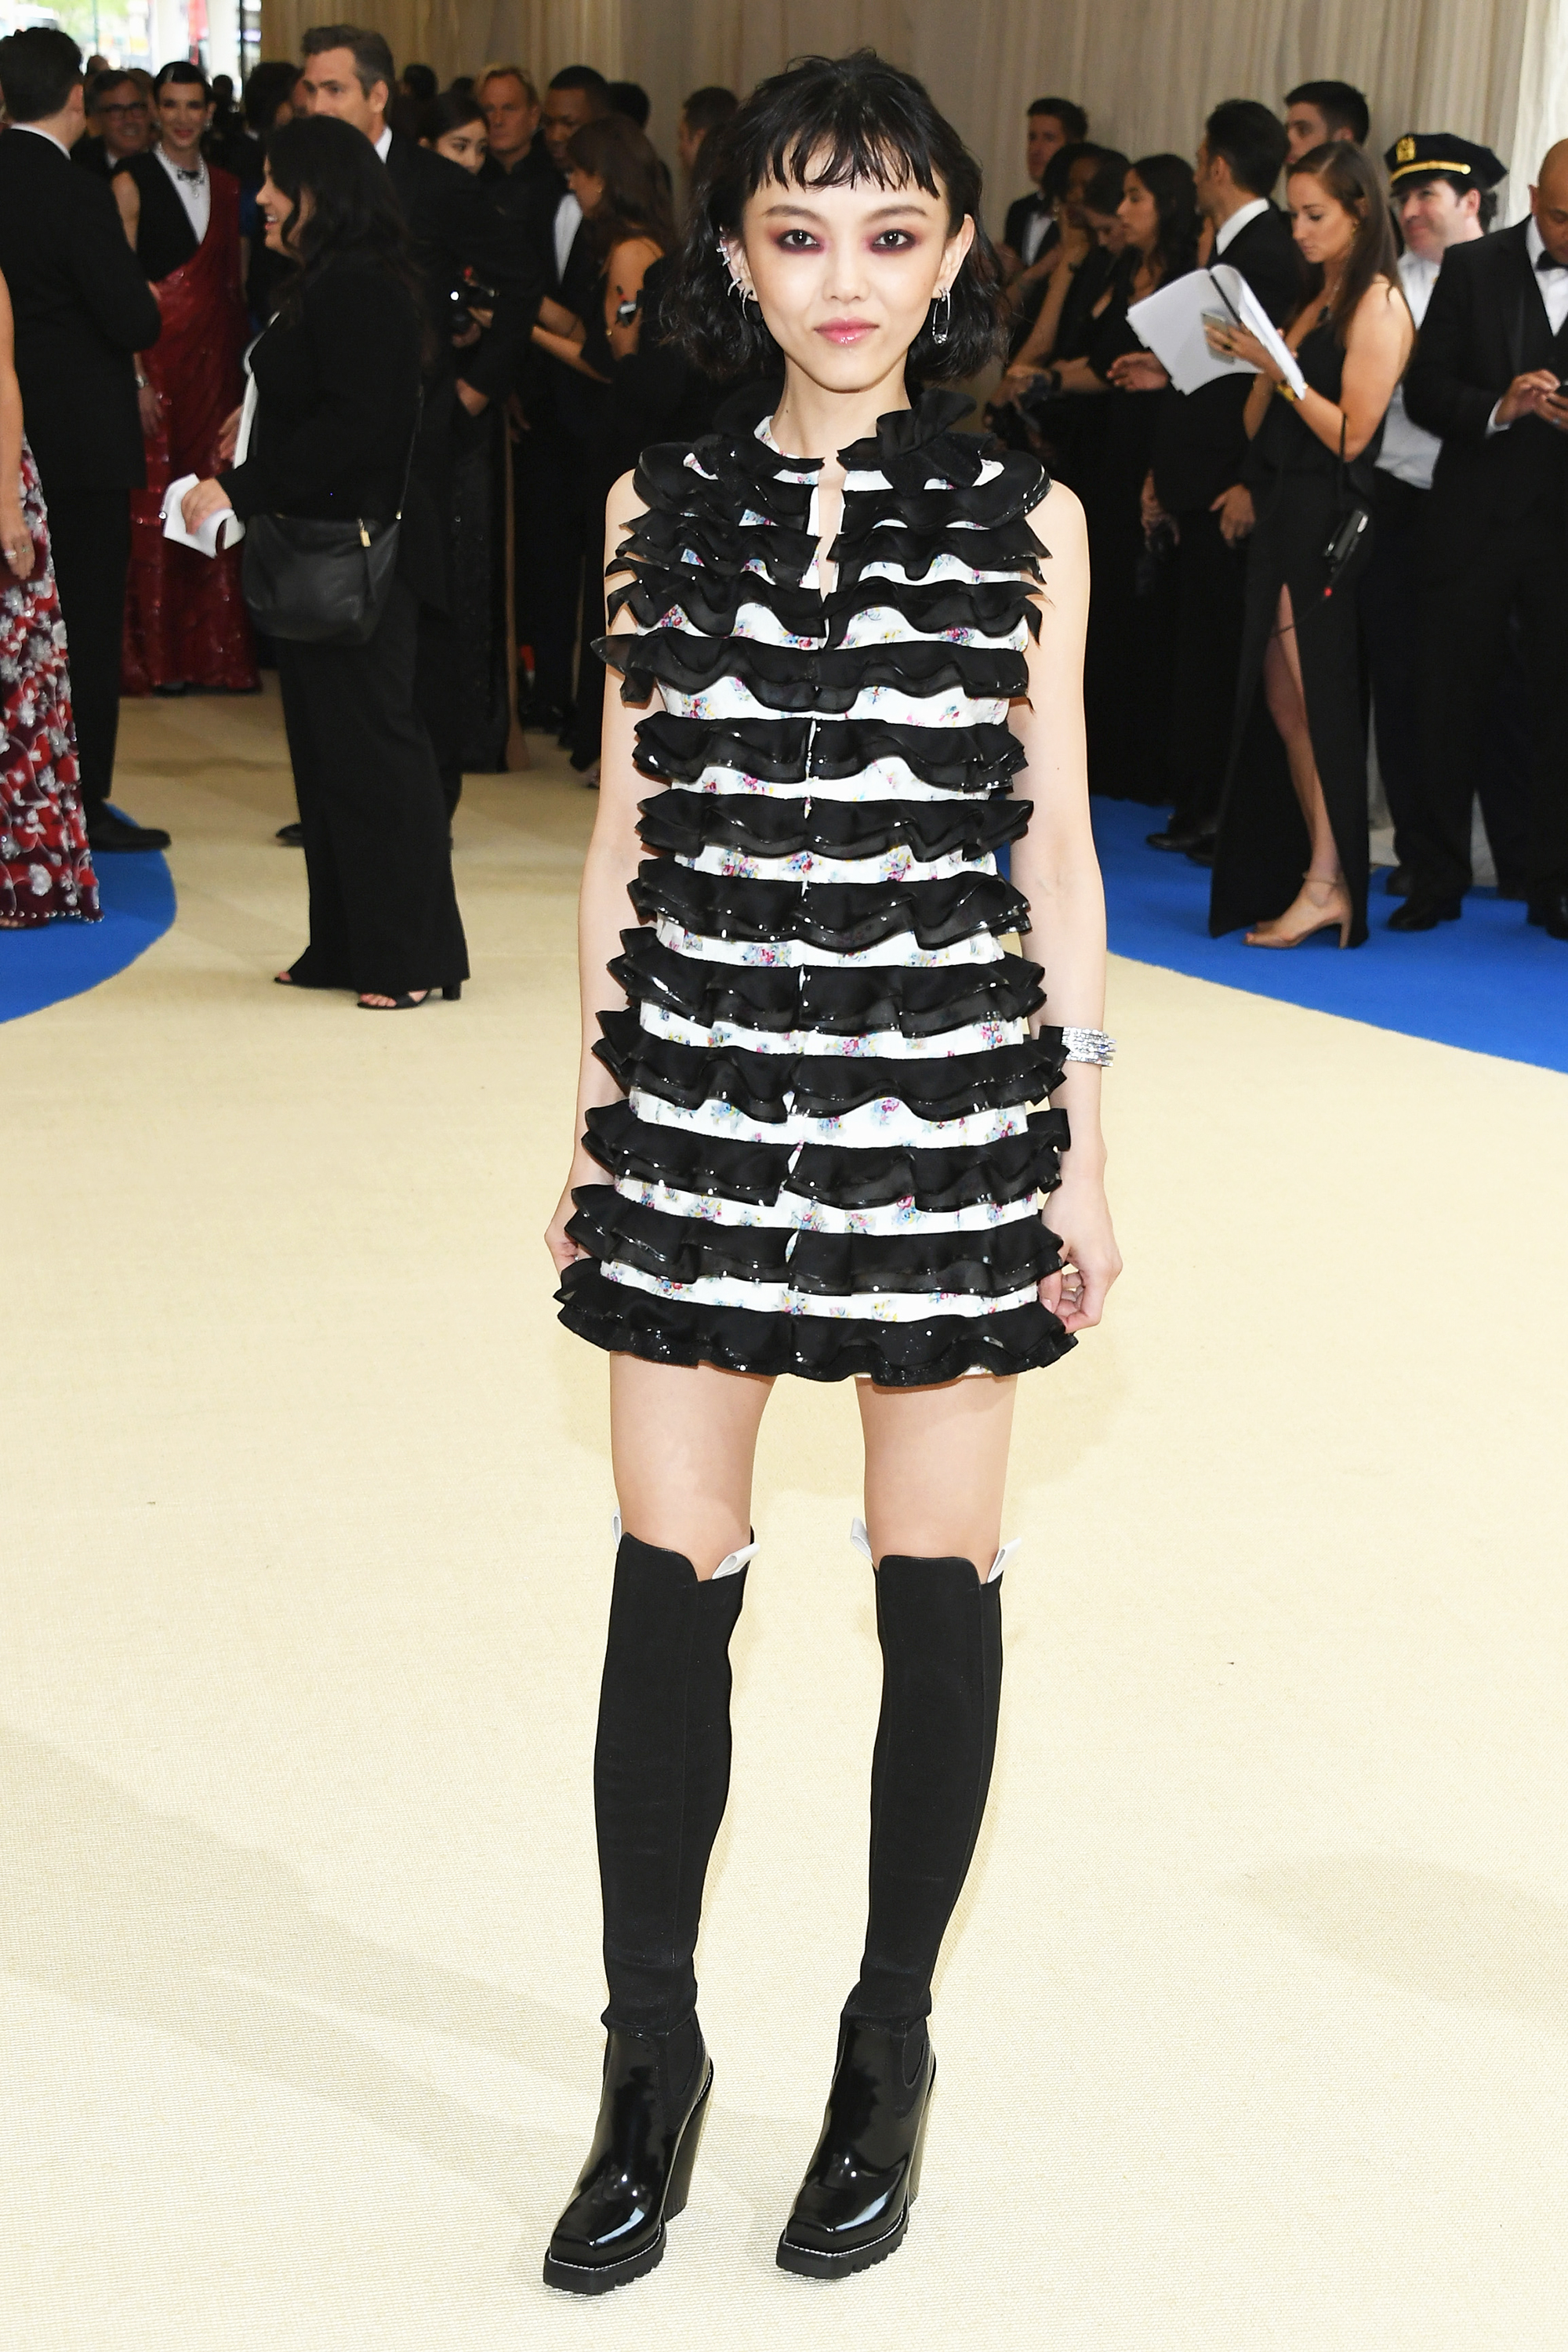 Rila Fukushima attends The Metropolitan Museum of Art's Costume Institute benefit gala celebrating the opening of the Rei Kawakubo/Comme des Garçons: Art of the In-Between exhibition in New York City, on May 1, 2017.